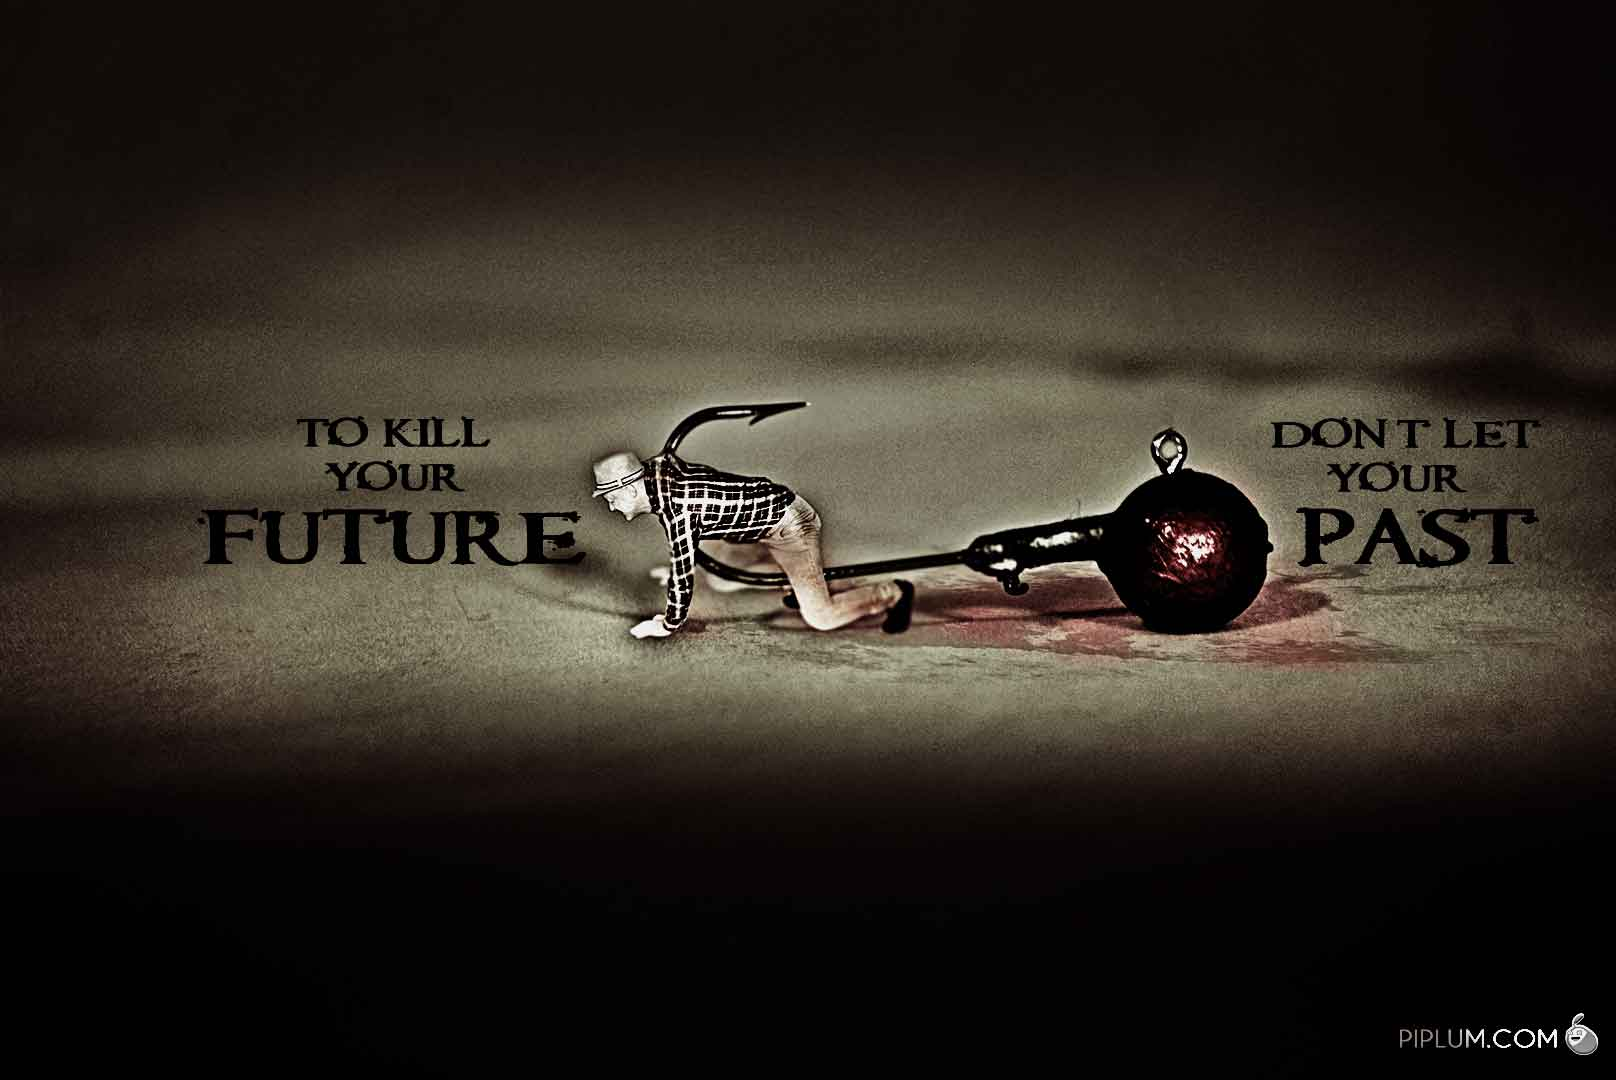 """DON'T-LET-YOUR-PAST-KILL-YOUR-FUTURE"